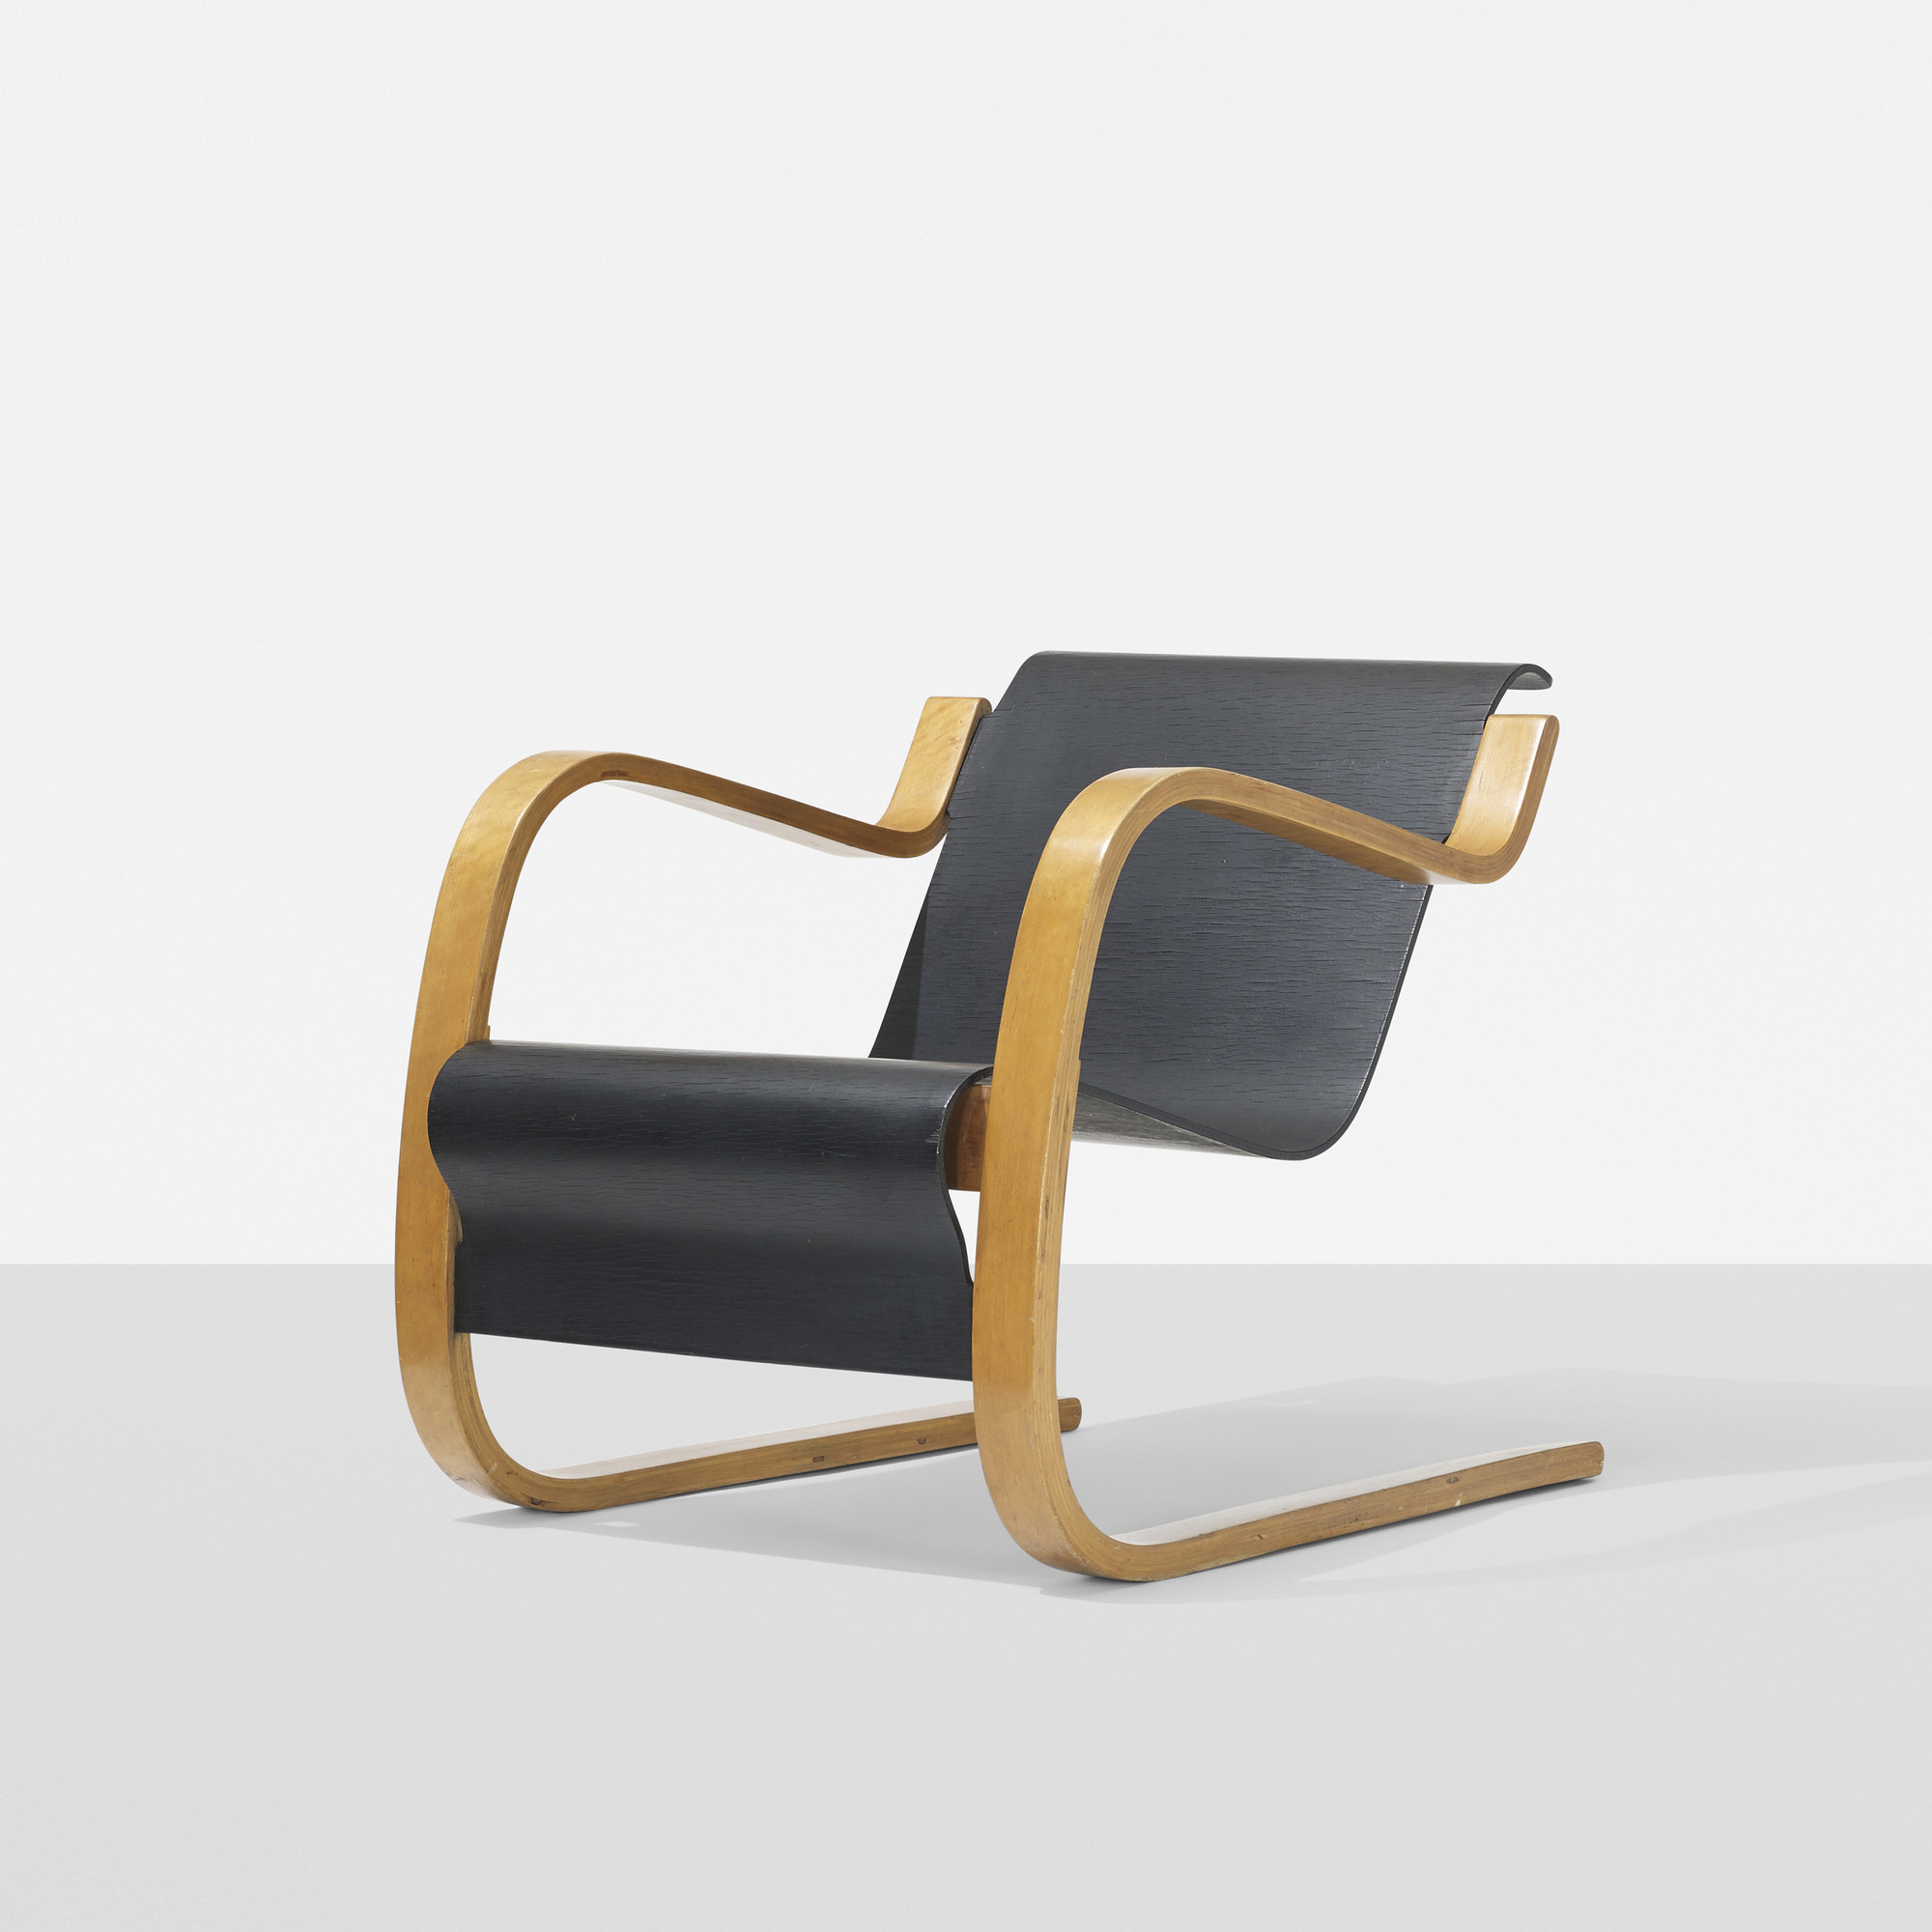 Charmant 204: Alvar Aalto / Cantilever Lounge Chair, Model 31/42 (1 Of